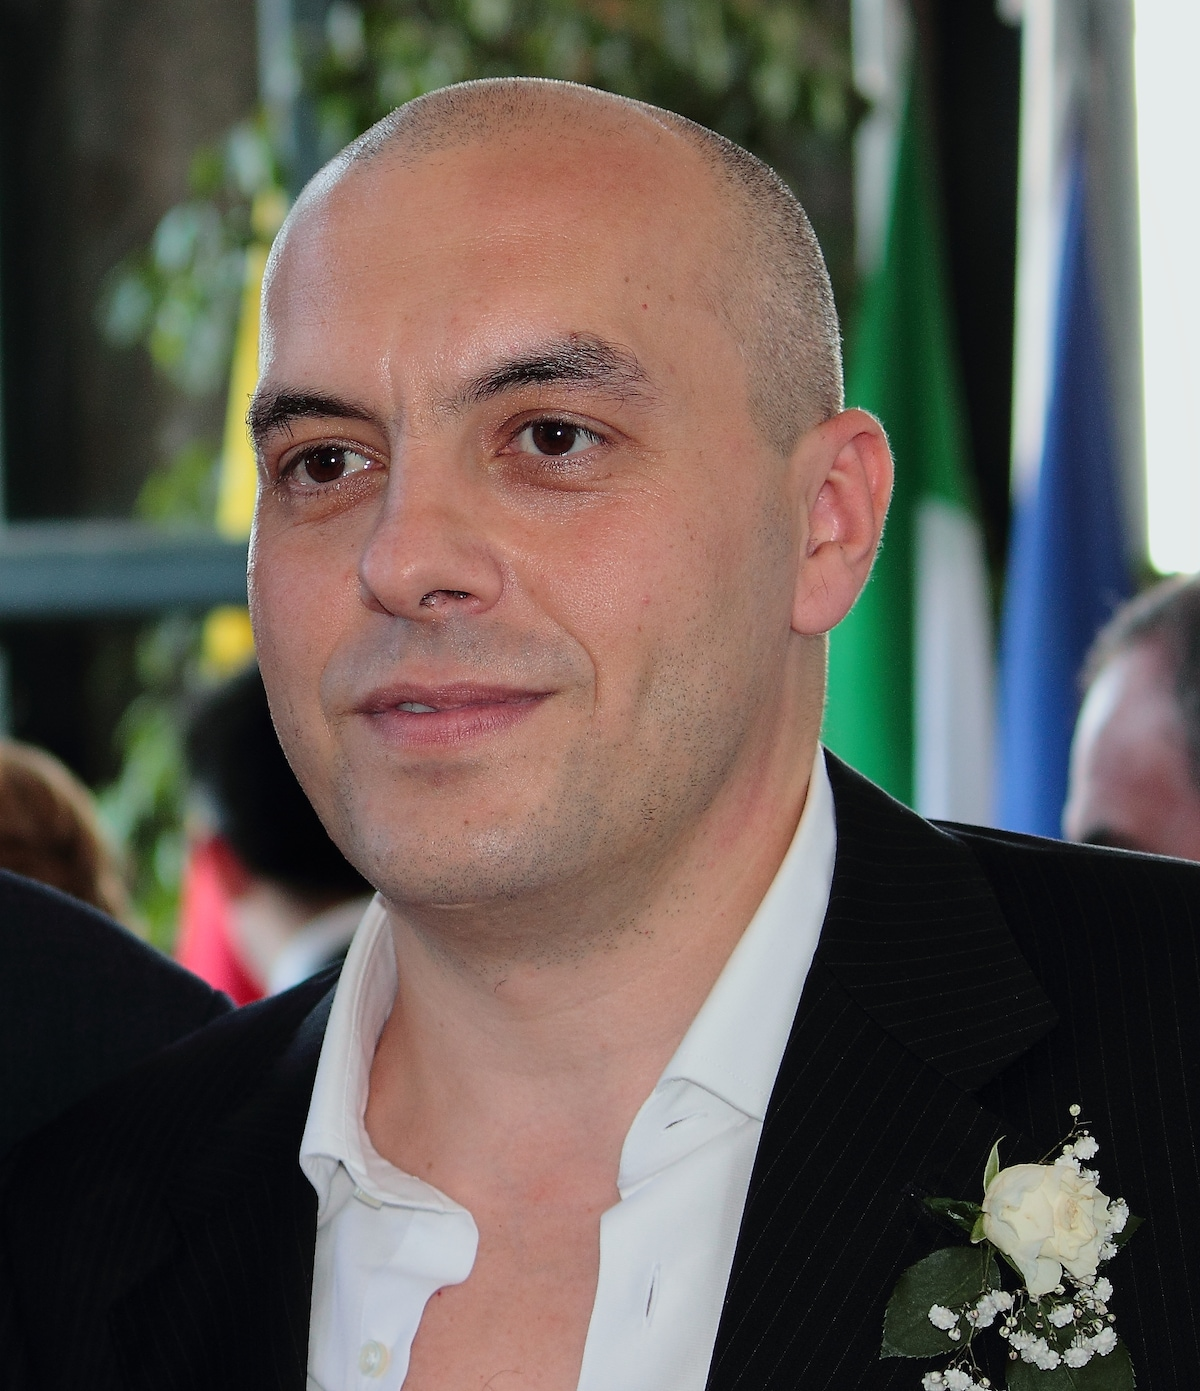 Luca from Napoli